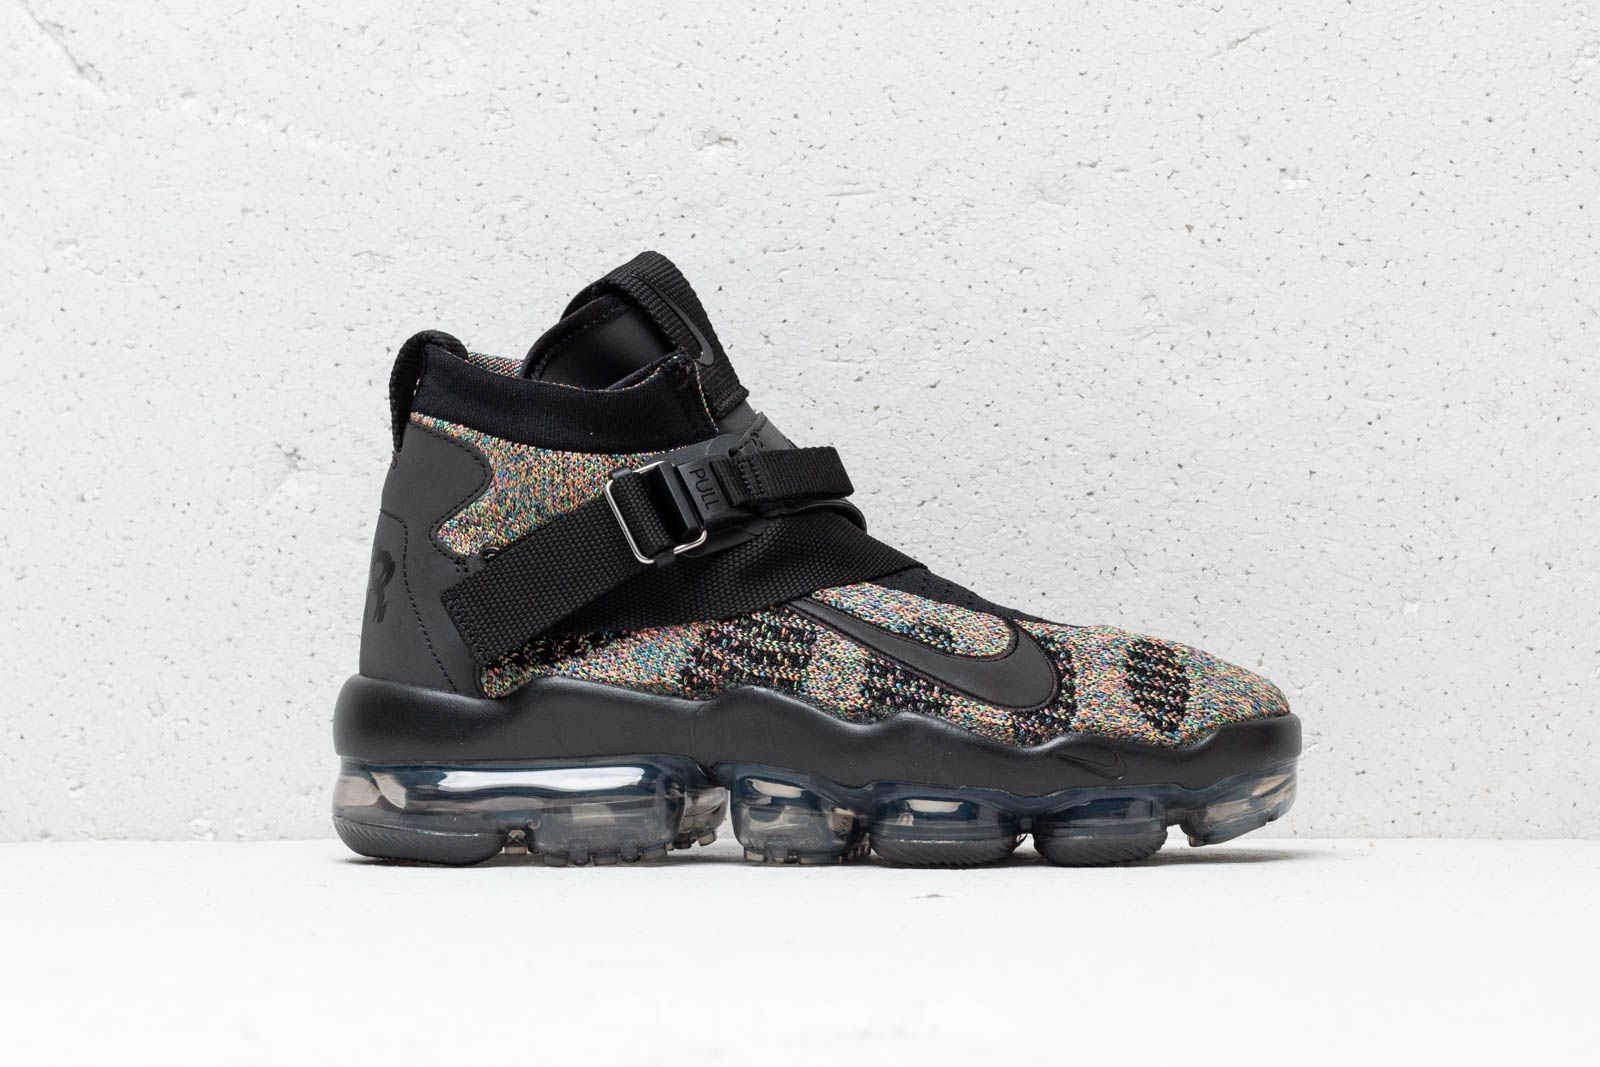 9220ae19af46 Nike Air Vapormax Premier Flyknit Black  Signal Blue-Green Strike at a  great price